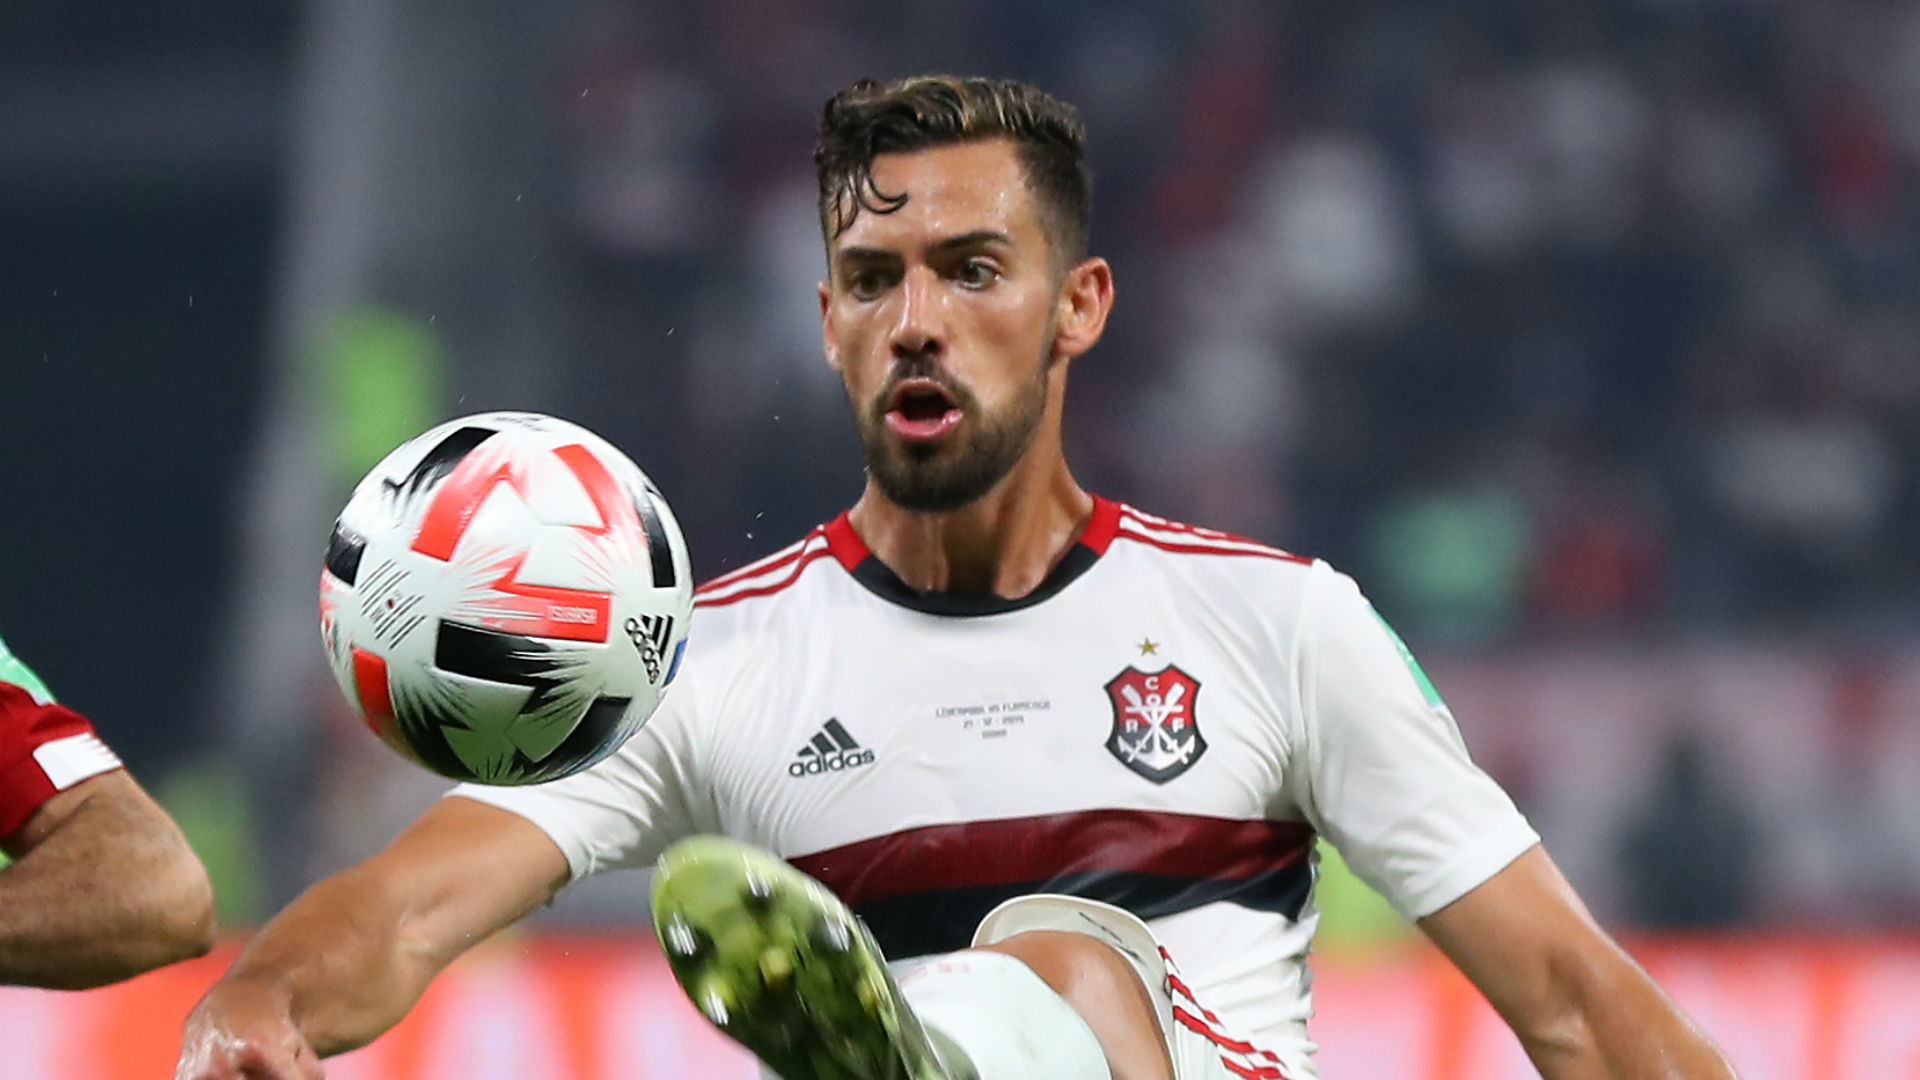 Arsenal complete signing of Pablo Mari on loan with option to buy